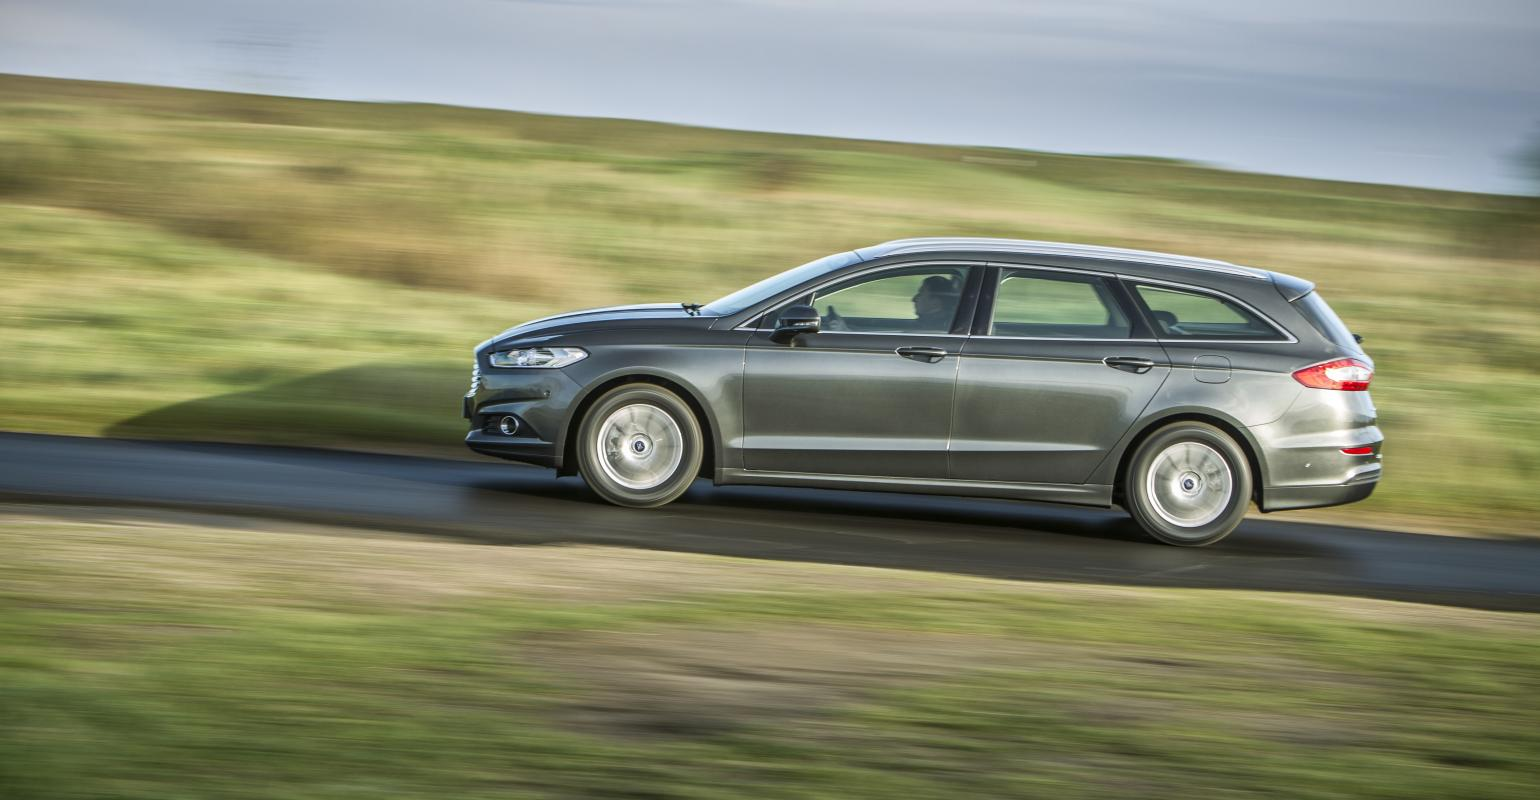 Station Wagon Among Ford S New Generation Of Mondeo Hybrid Models